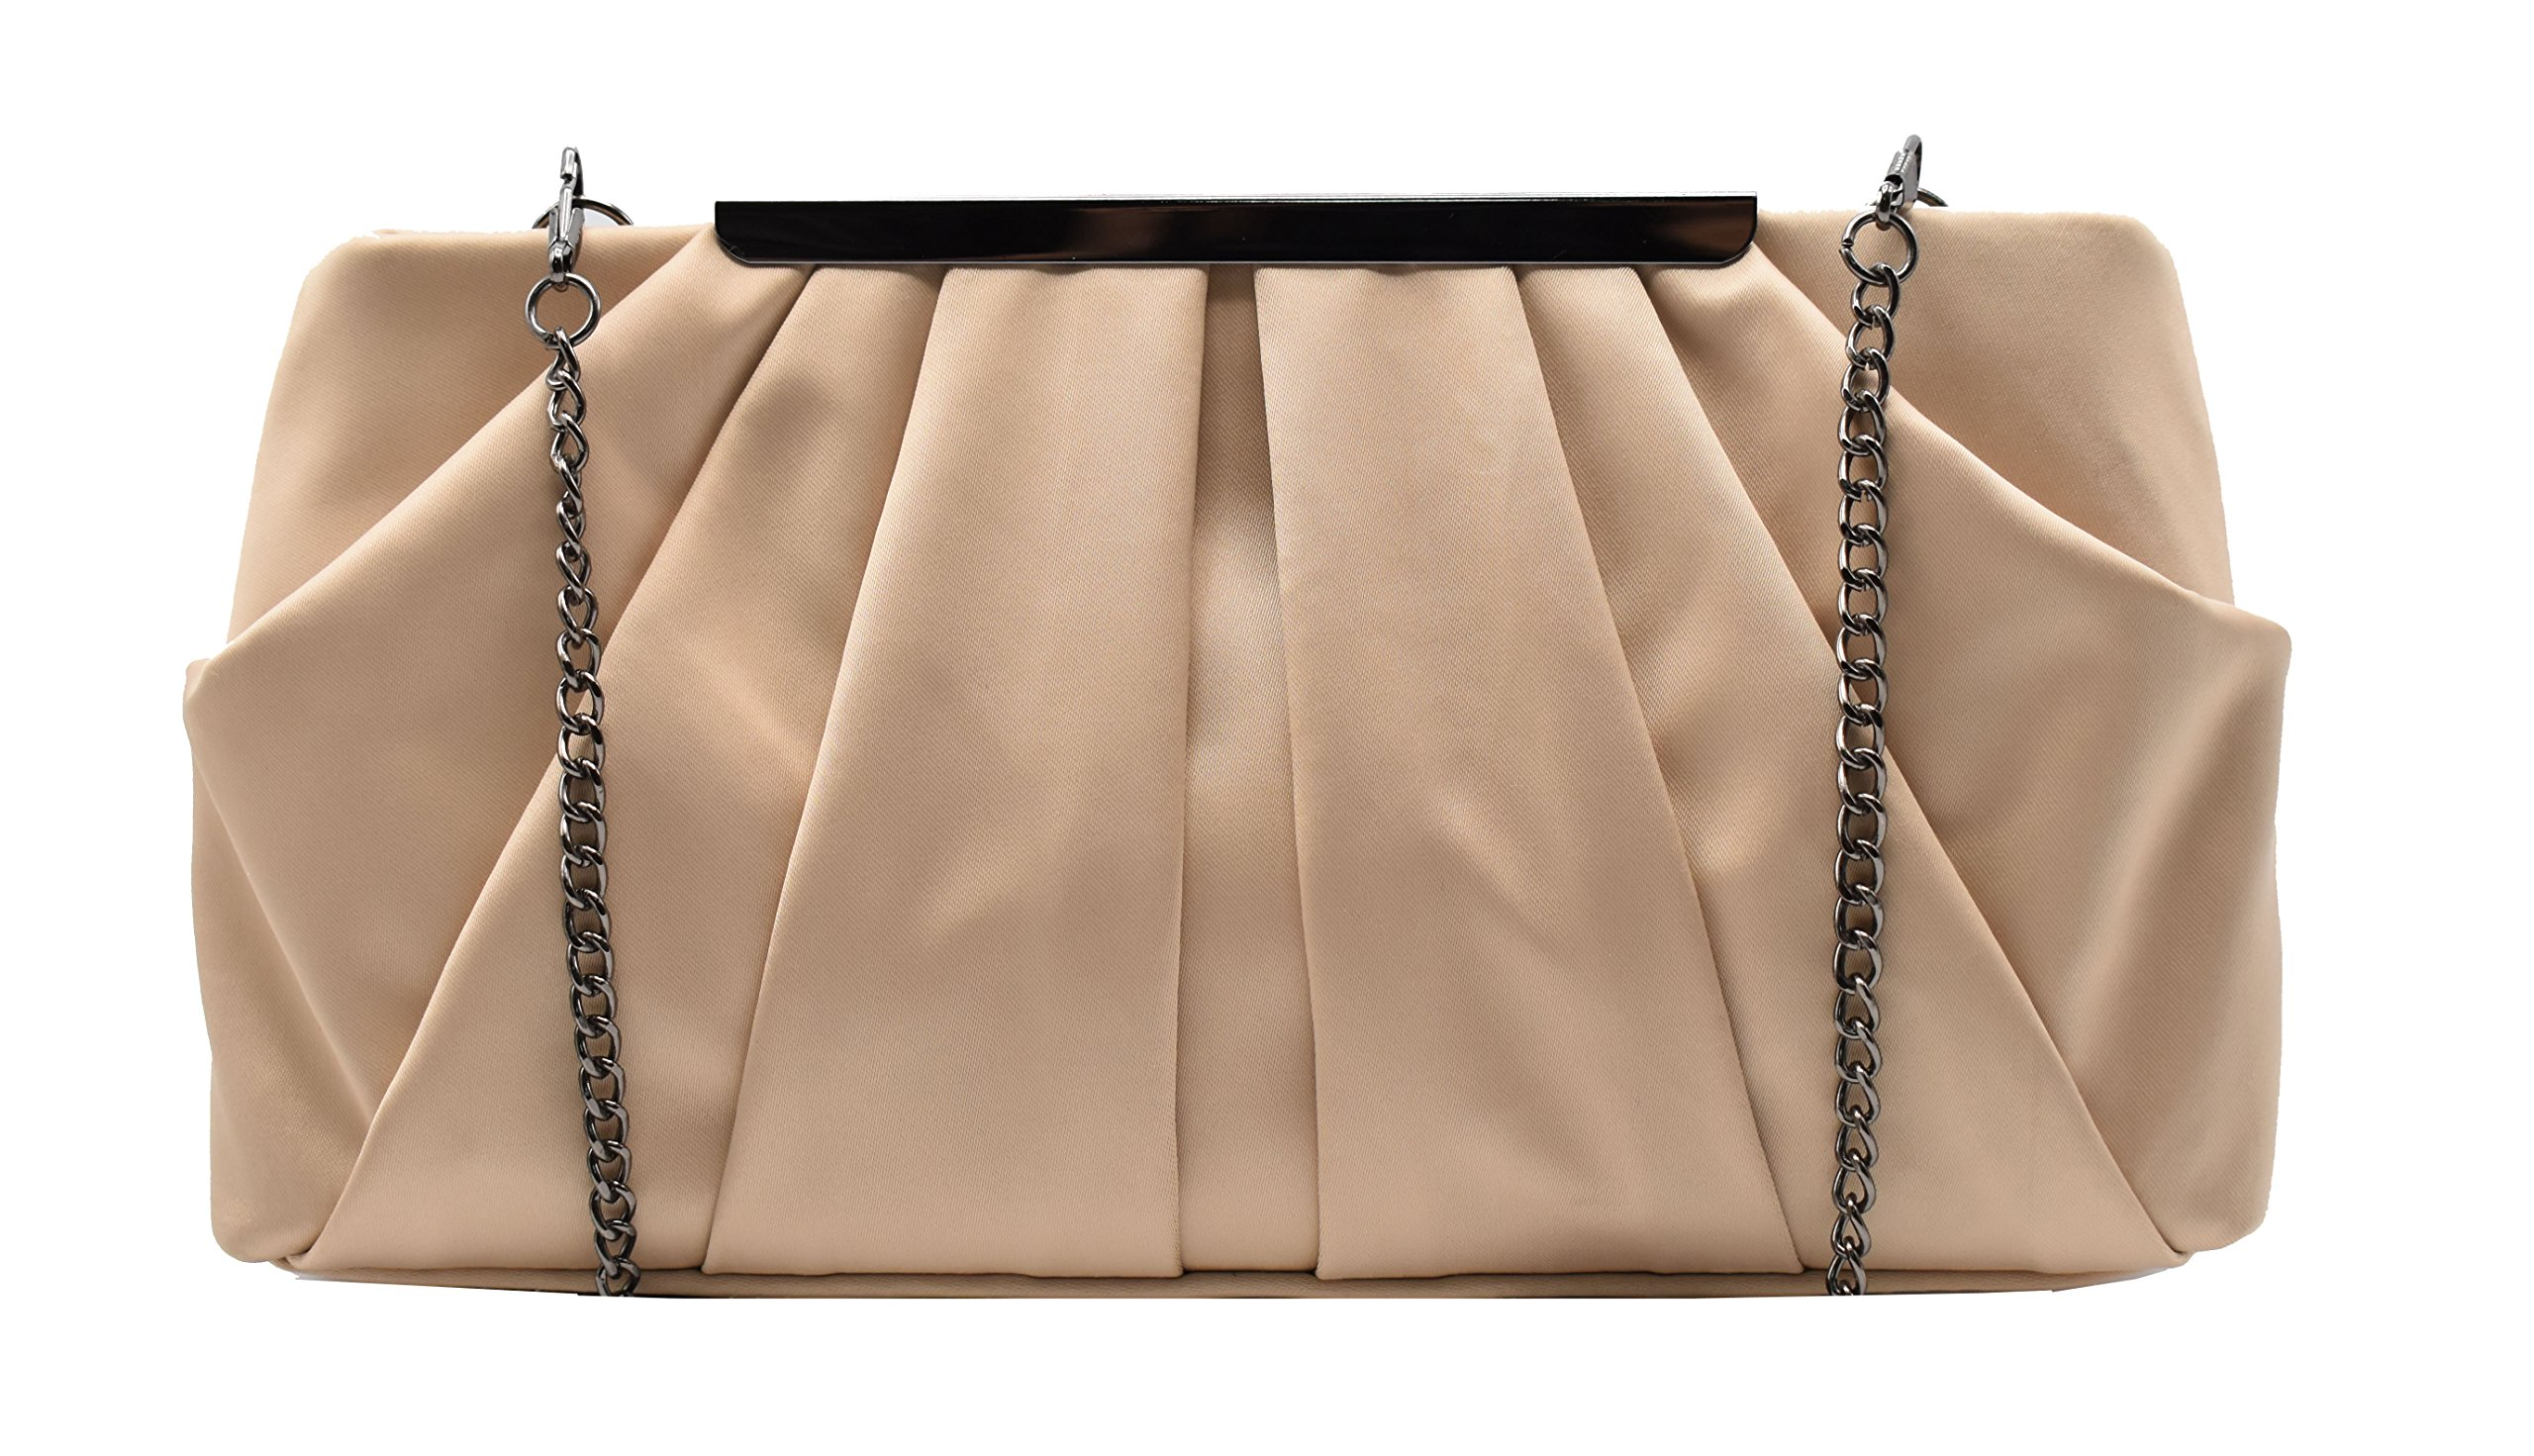 Womens Pleated Satin Evening Handbag Clutch With Detachable Chain Strap Wedding Cocktail Party Bag (Beige)